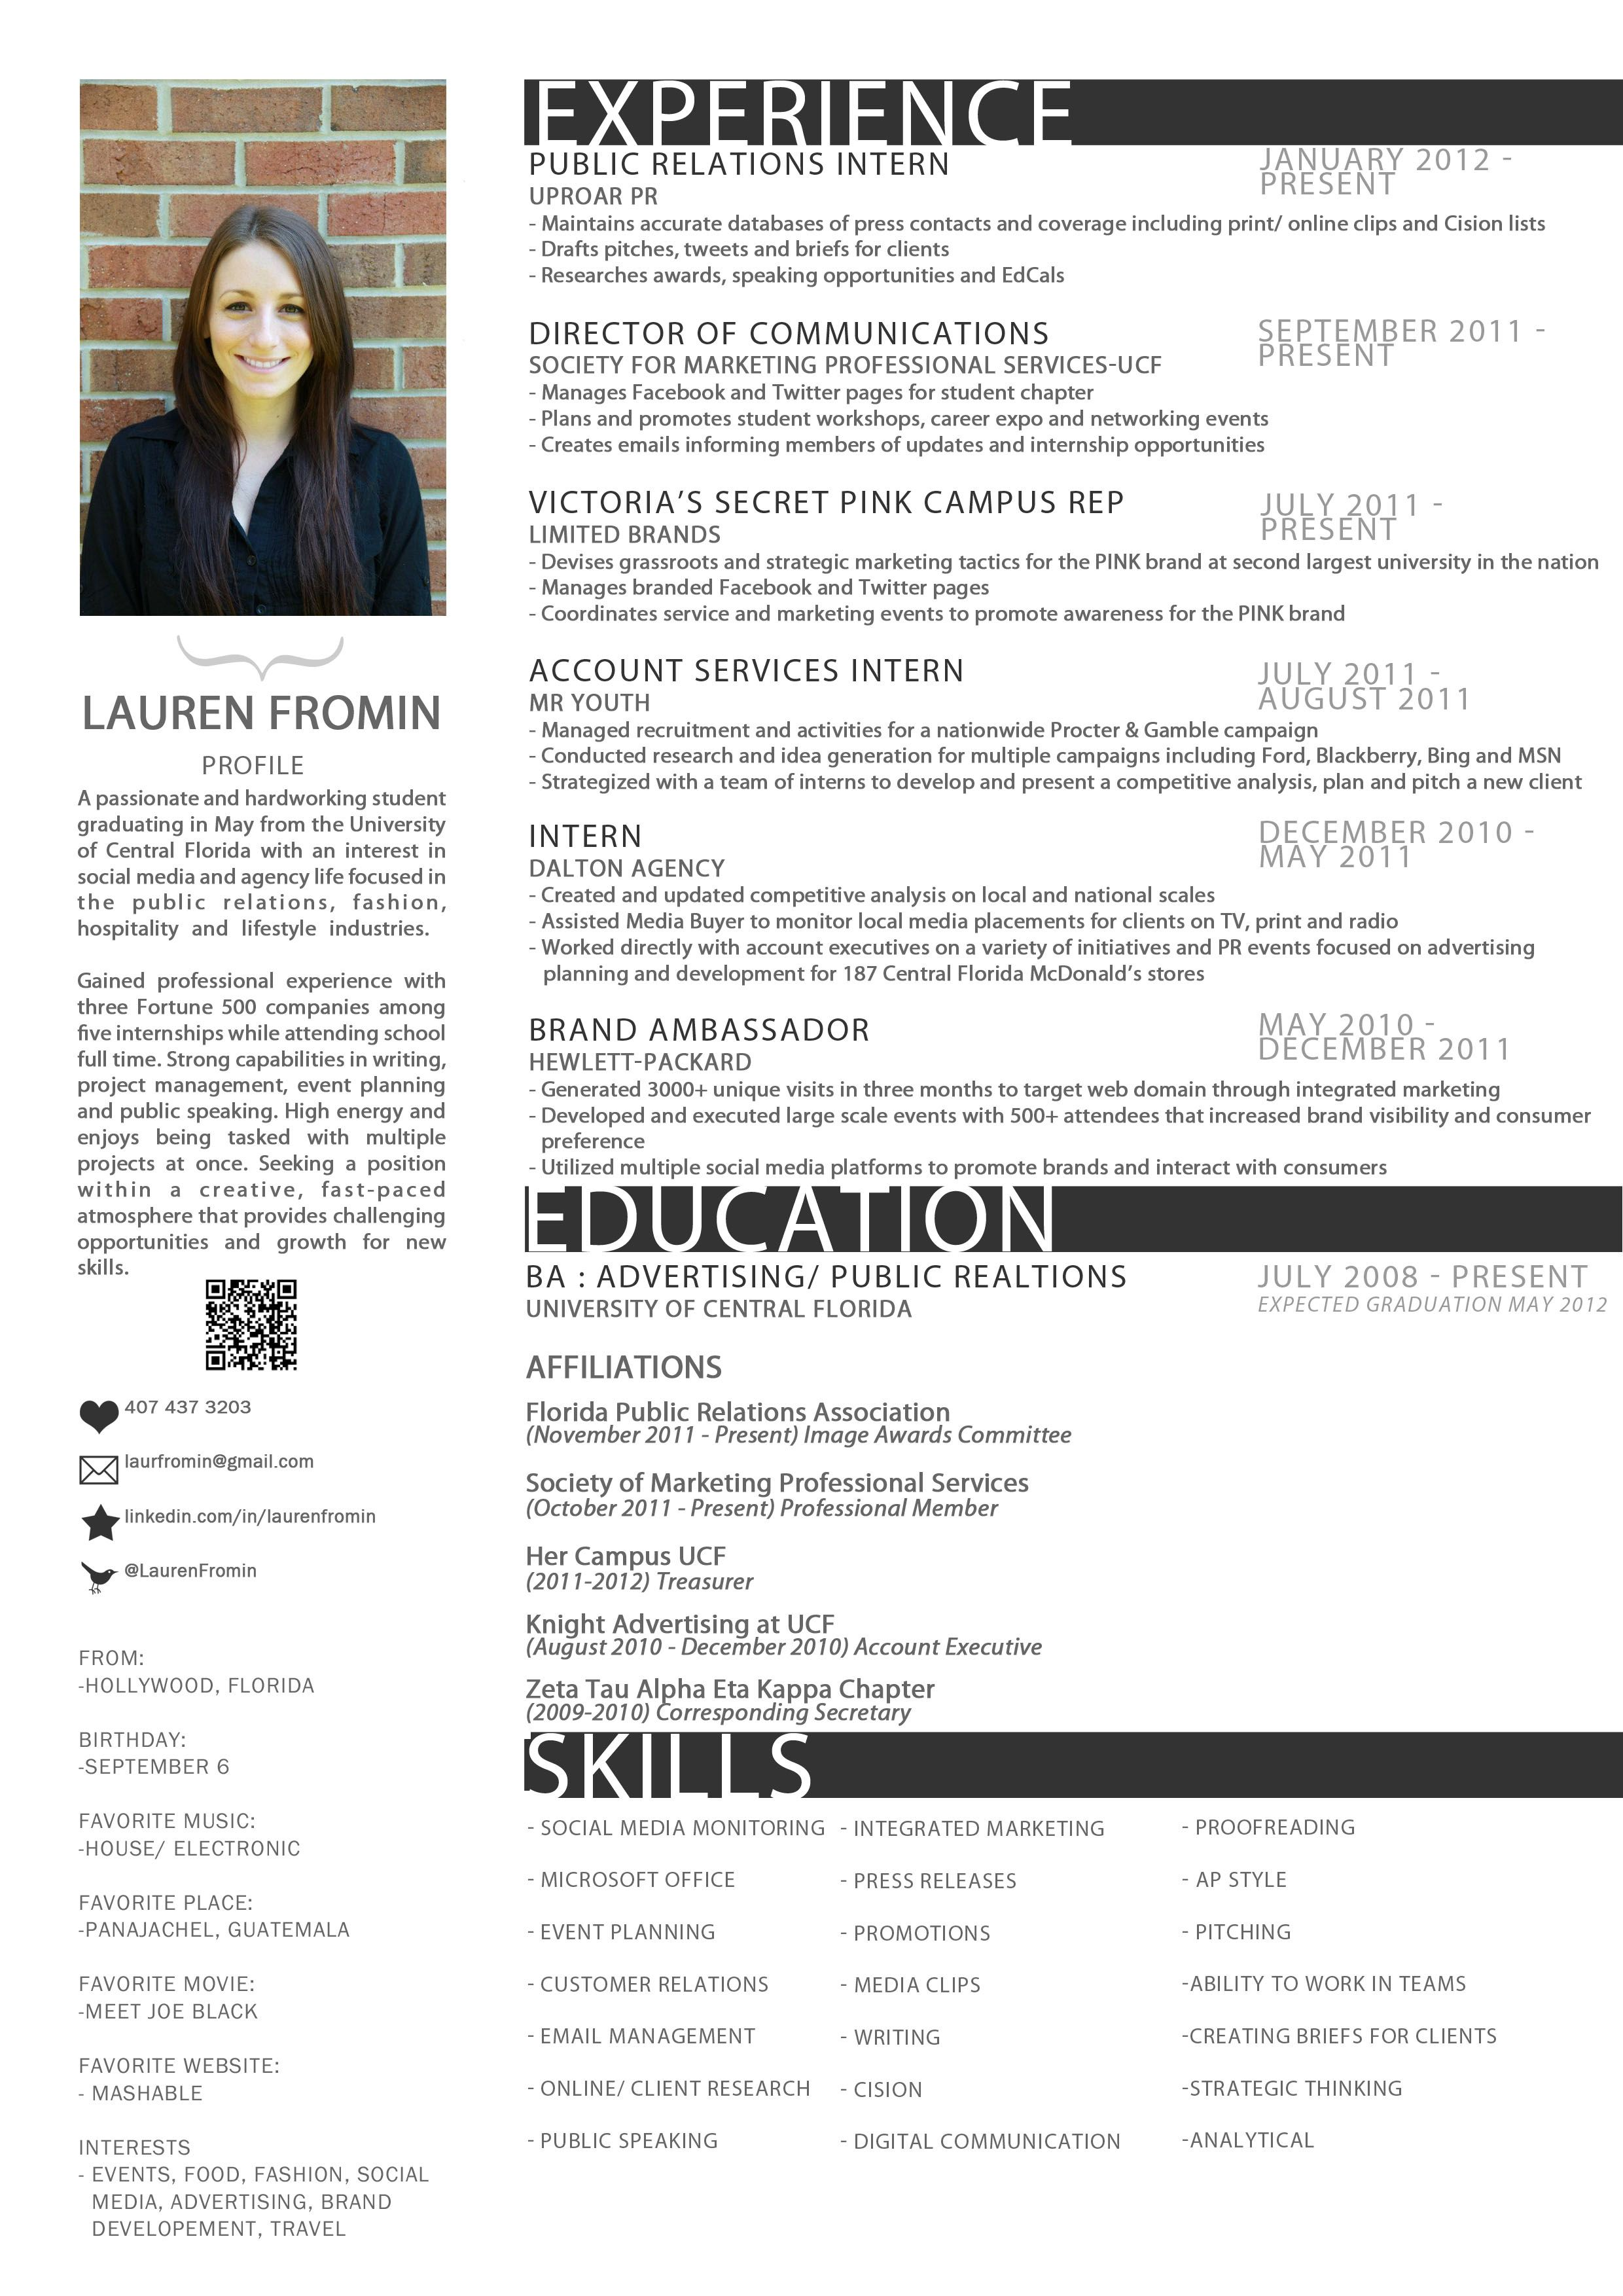 New Resume Life hacks Amazing life hacks and Cover letter resume